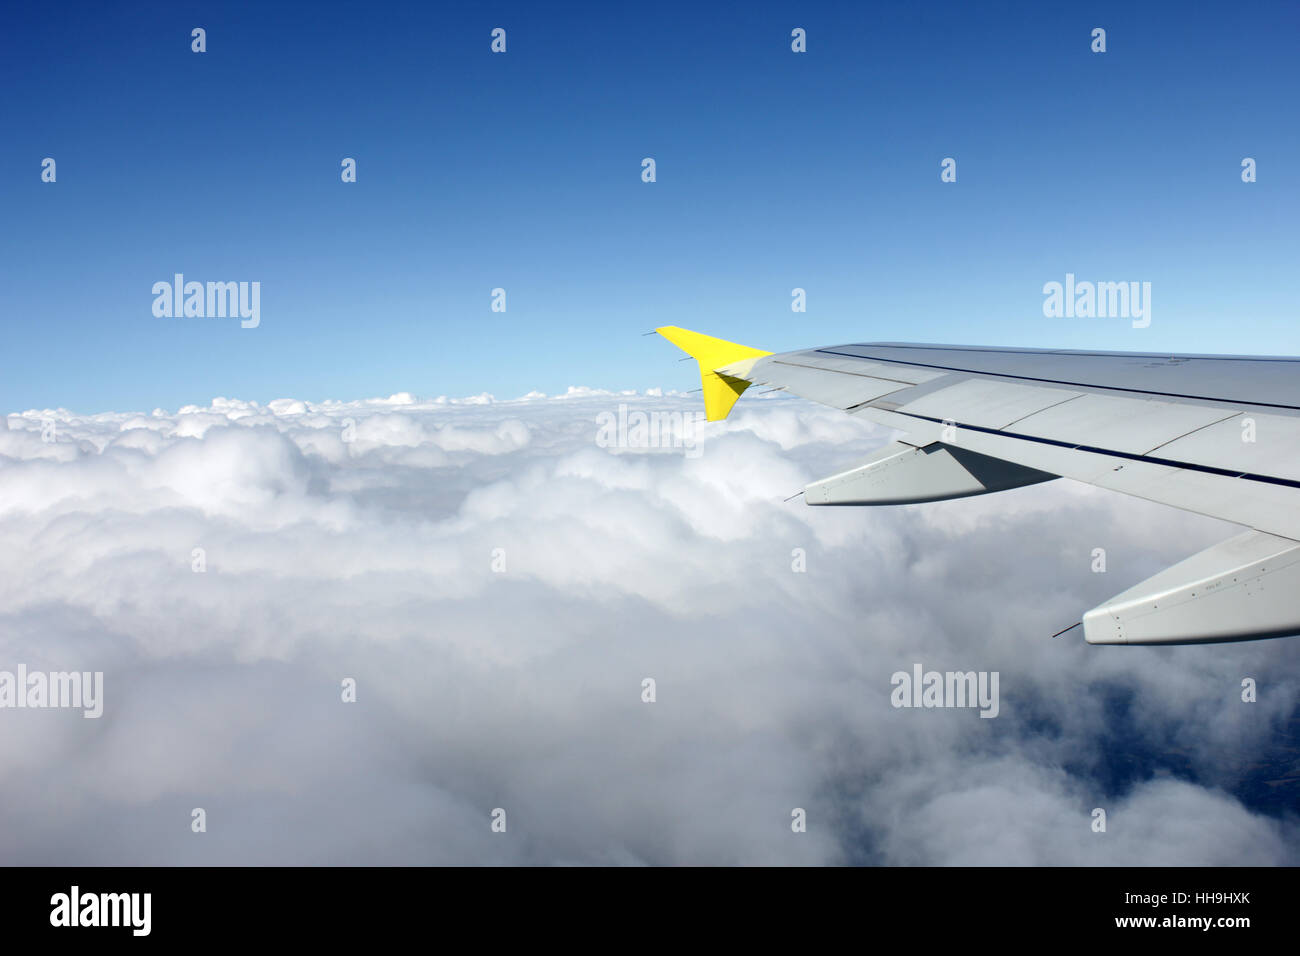 above the clouds - Stock Image